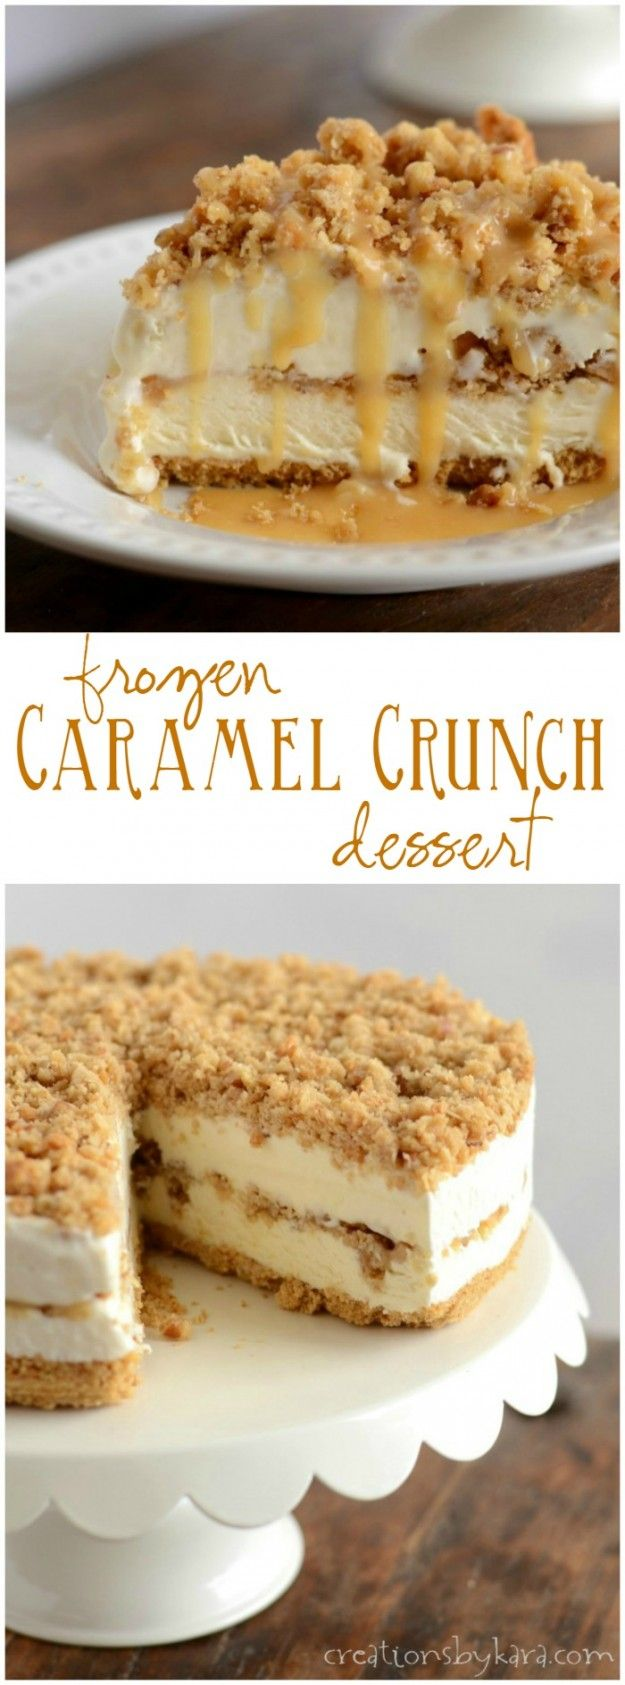 This Frozen Caramel Crunch Dessert makes a stunning presentation, and every bite is crazy delicious!